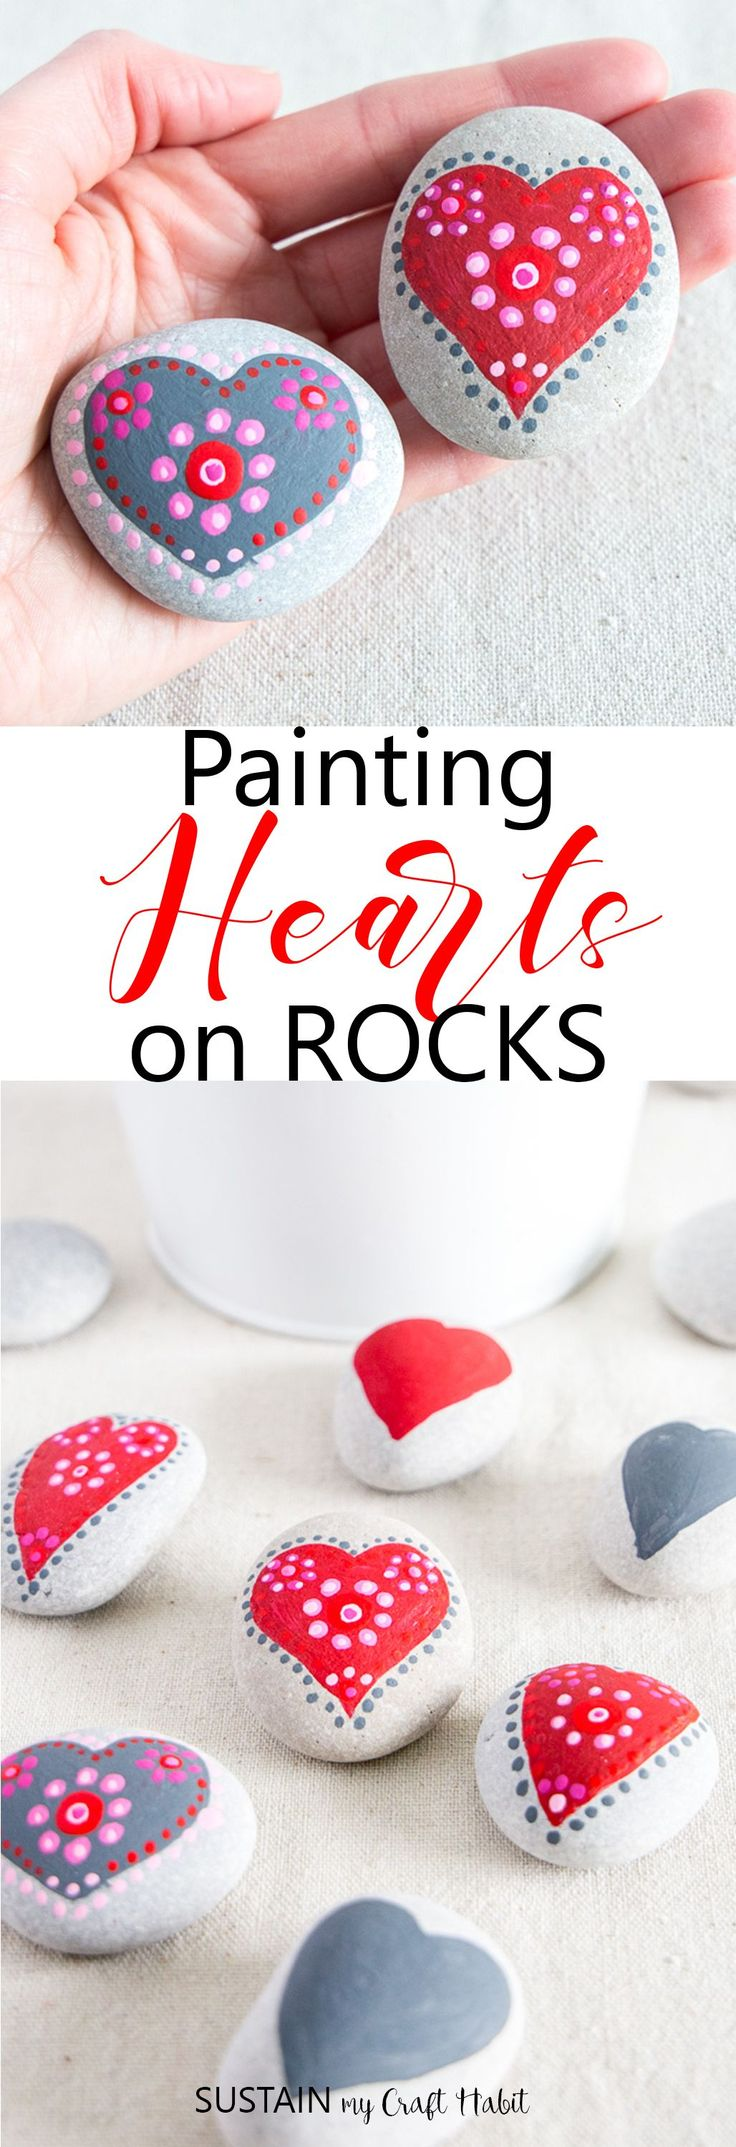 Beautiful heart painted rocks | Red, white and pink Valentine's decor  | Step-by-step #rockpainting tutorial. #easydecoratingideas